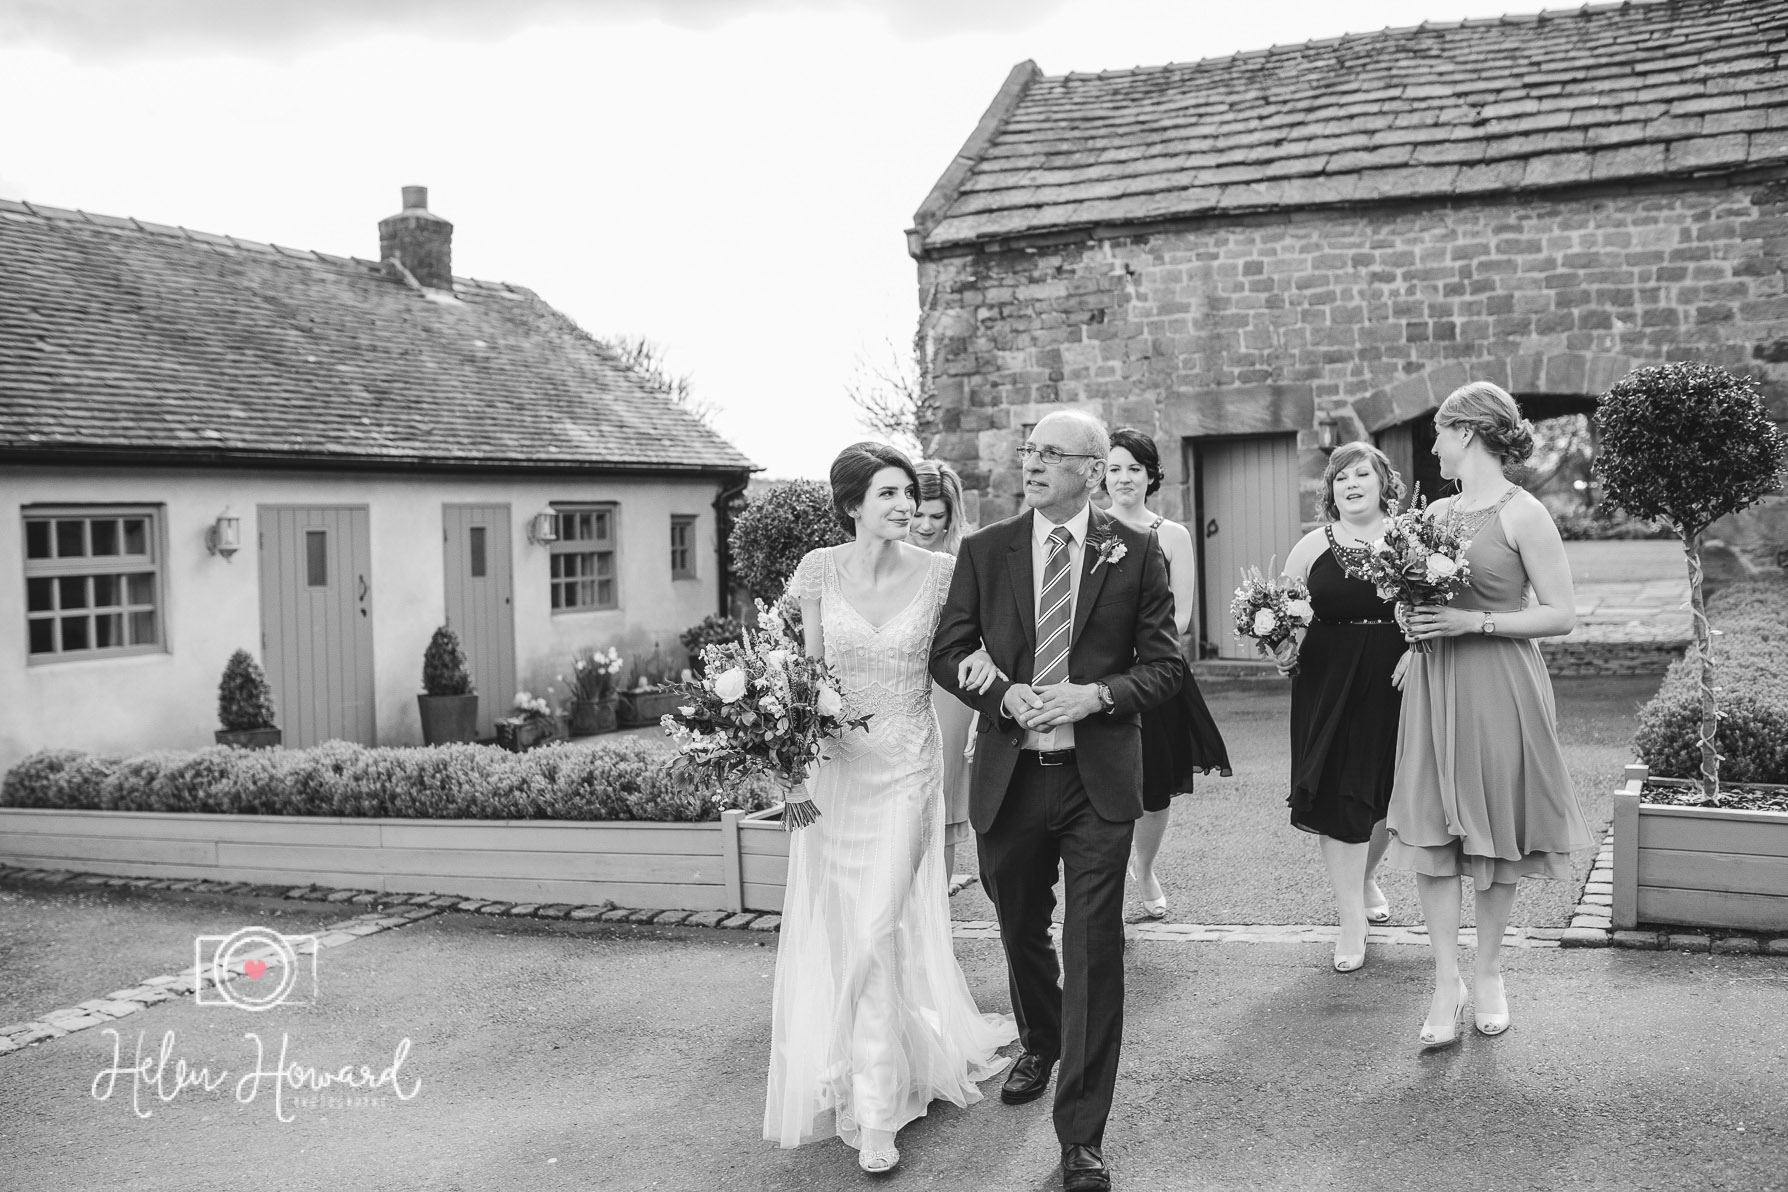 Dad and Bride approaching the Ashes barn for the ceremony